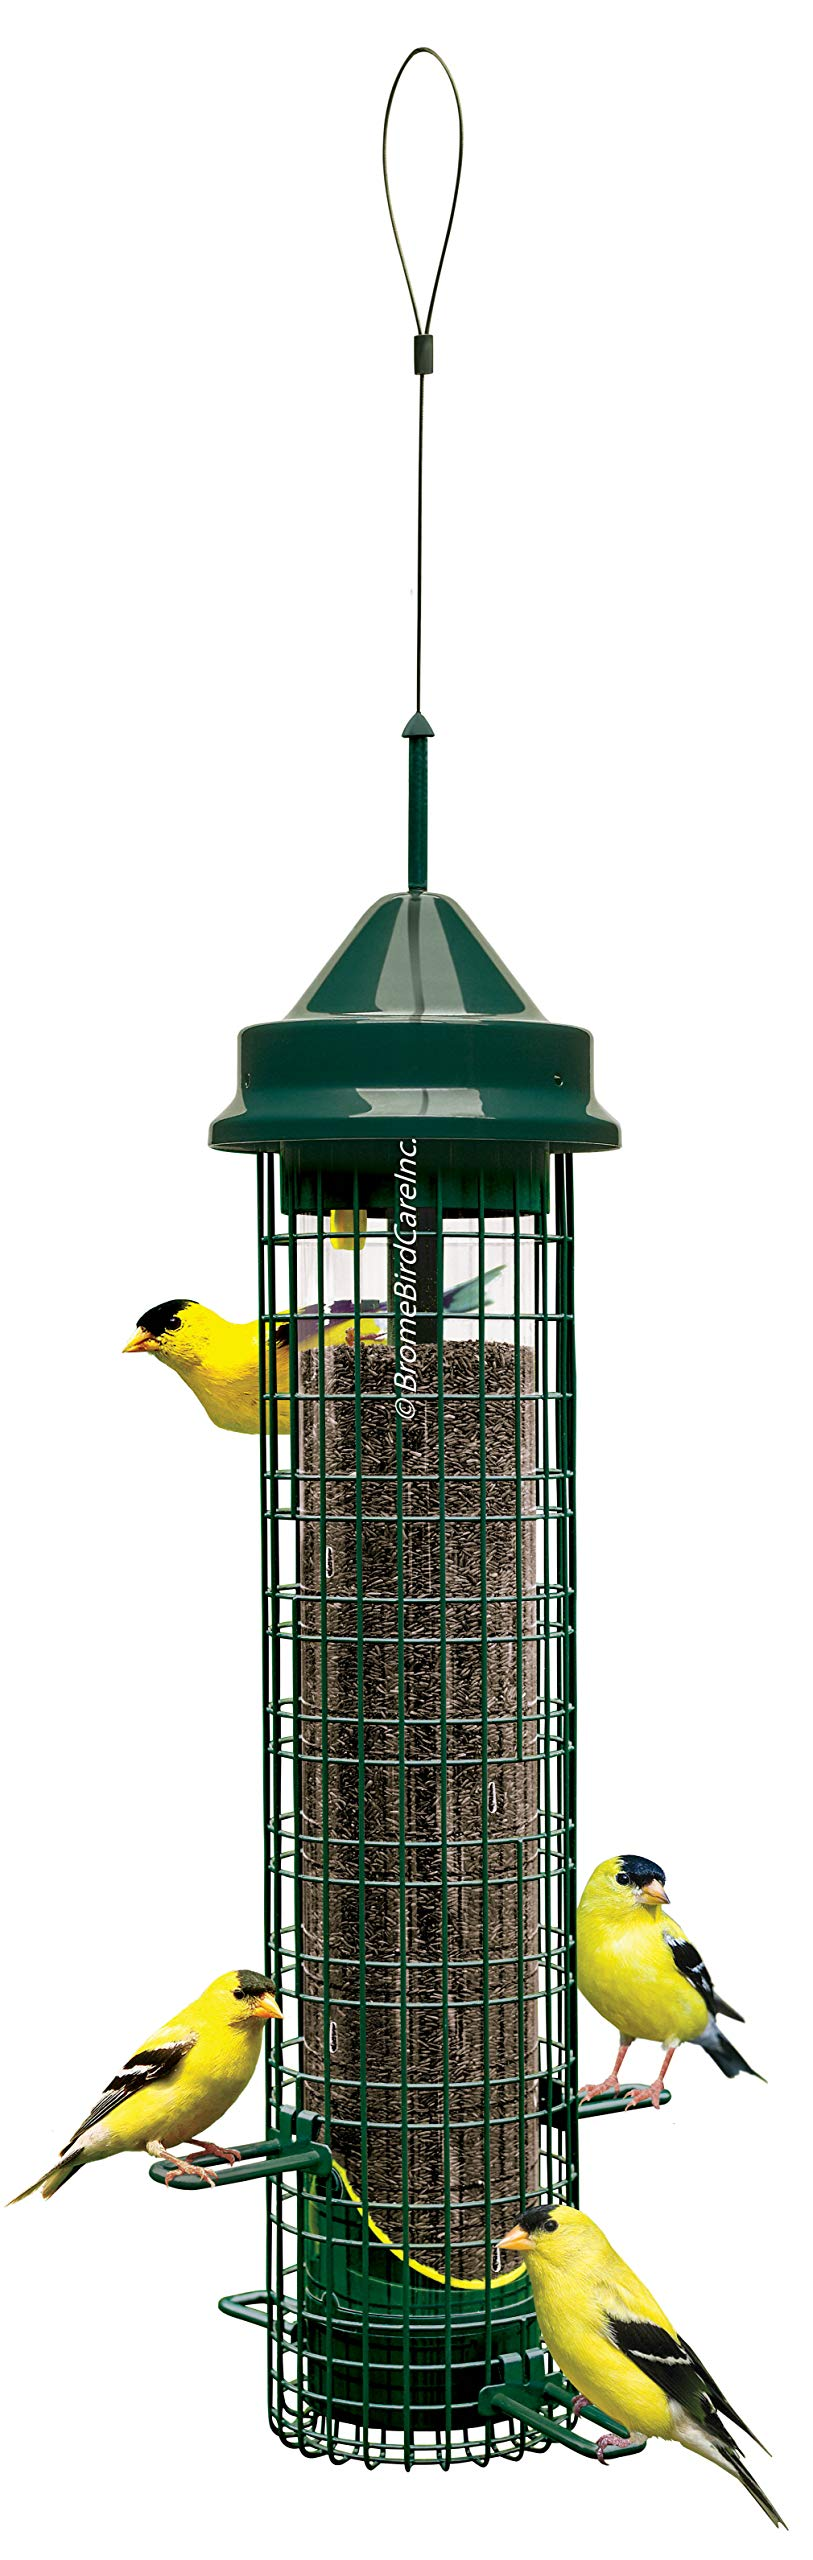 Brome 1016 Squirrel Buster Finch Feeder product image